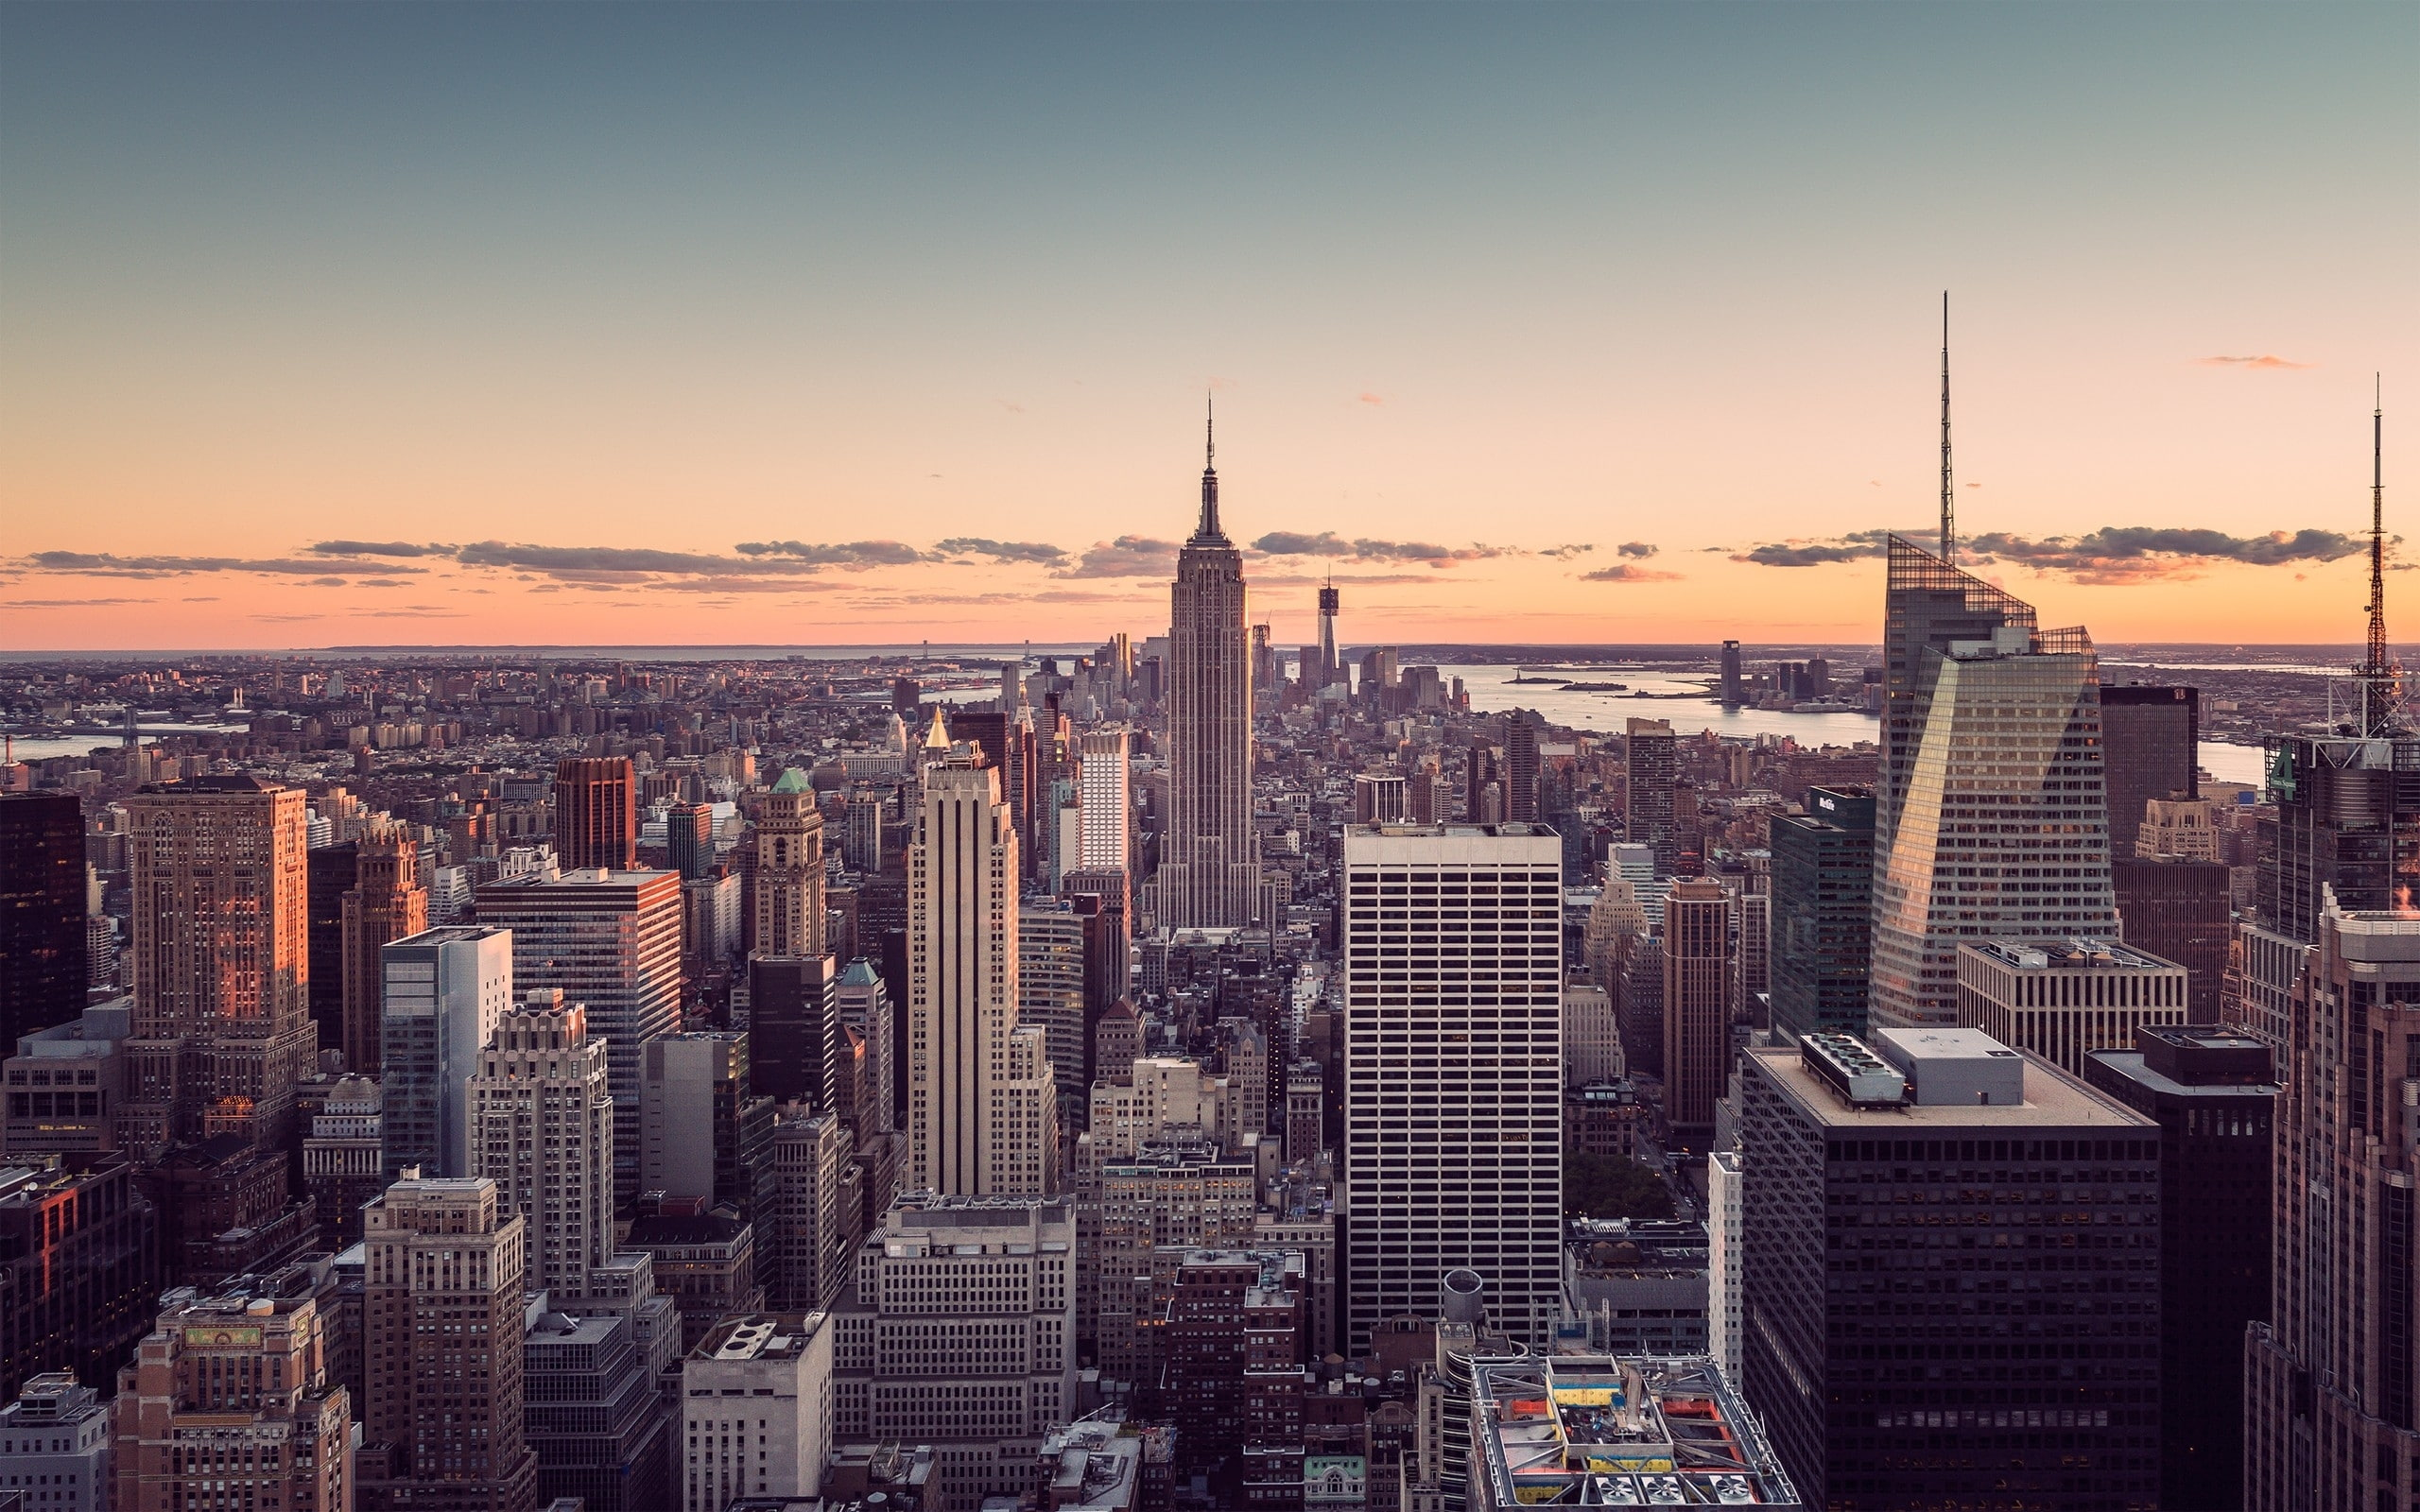 City Wallpaper New York Wallpaper Ny Usa 4k Wallpaper For You The Best Wallpaper For Desktop Mobile